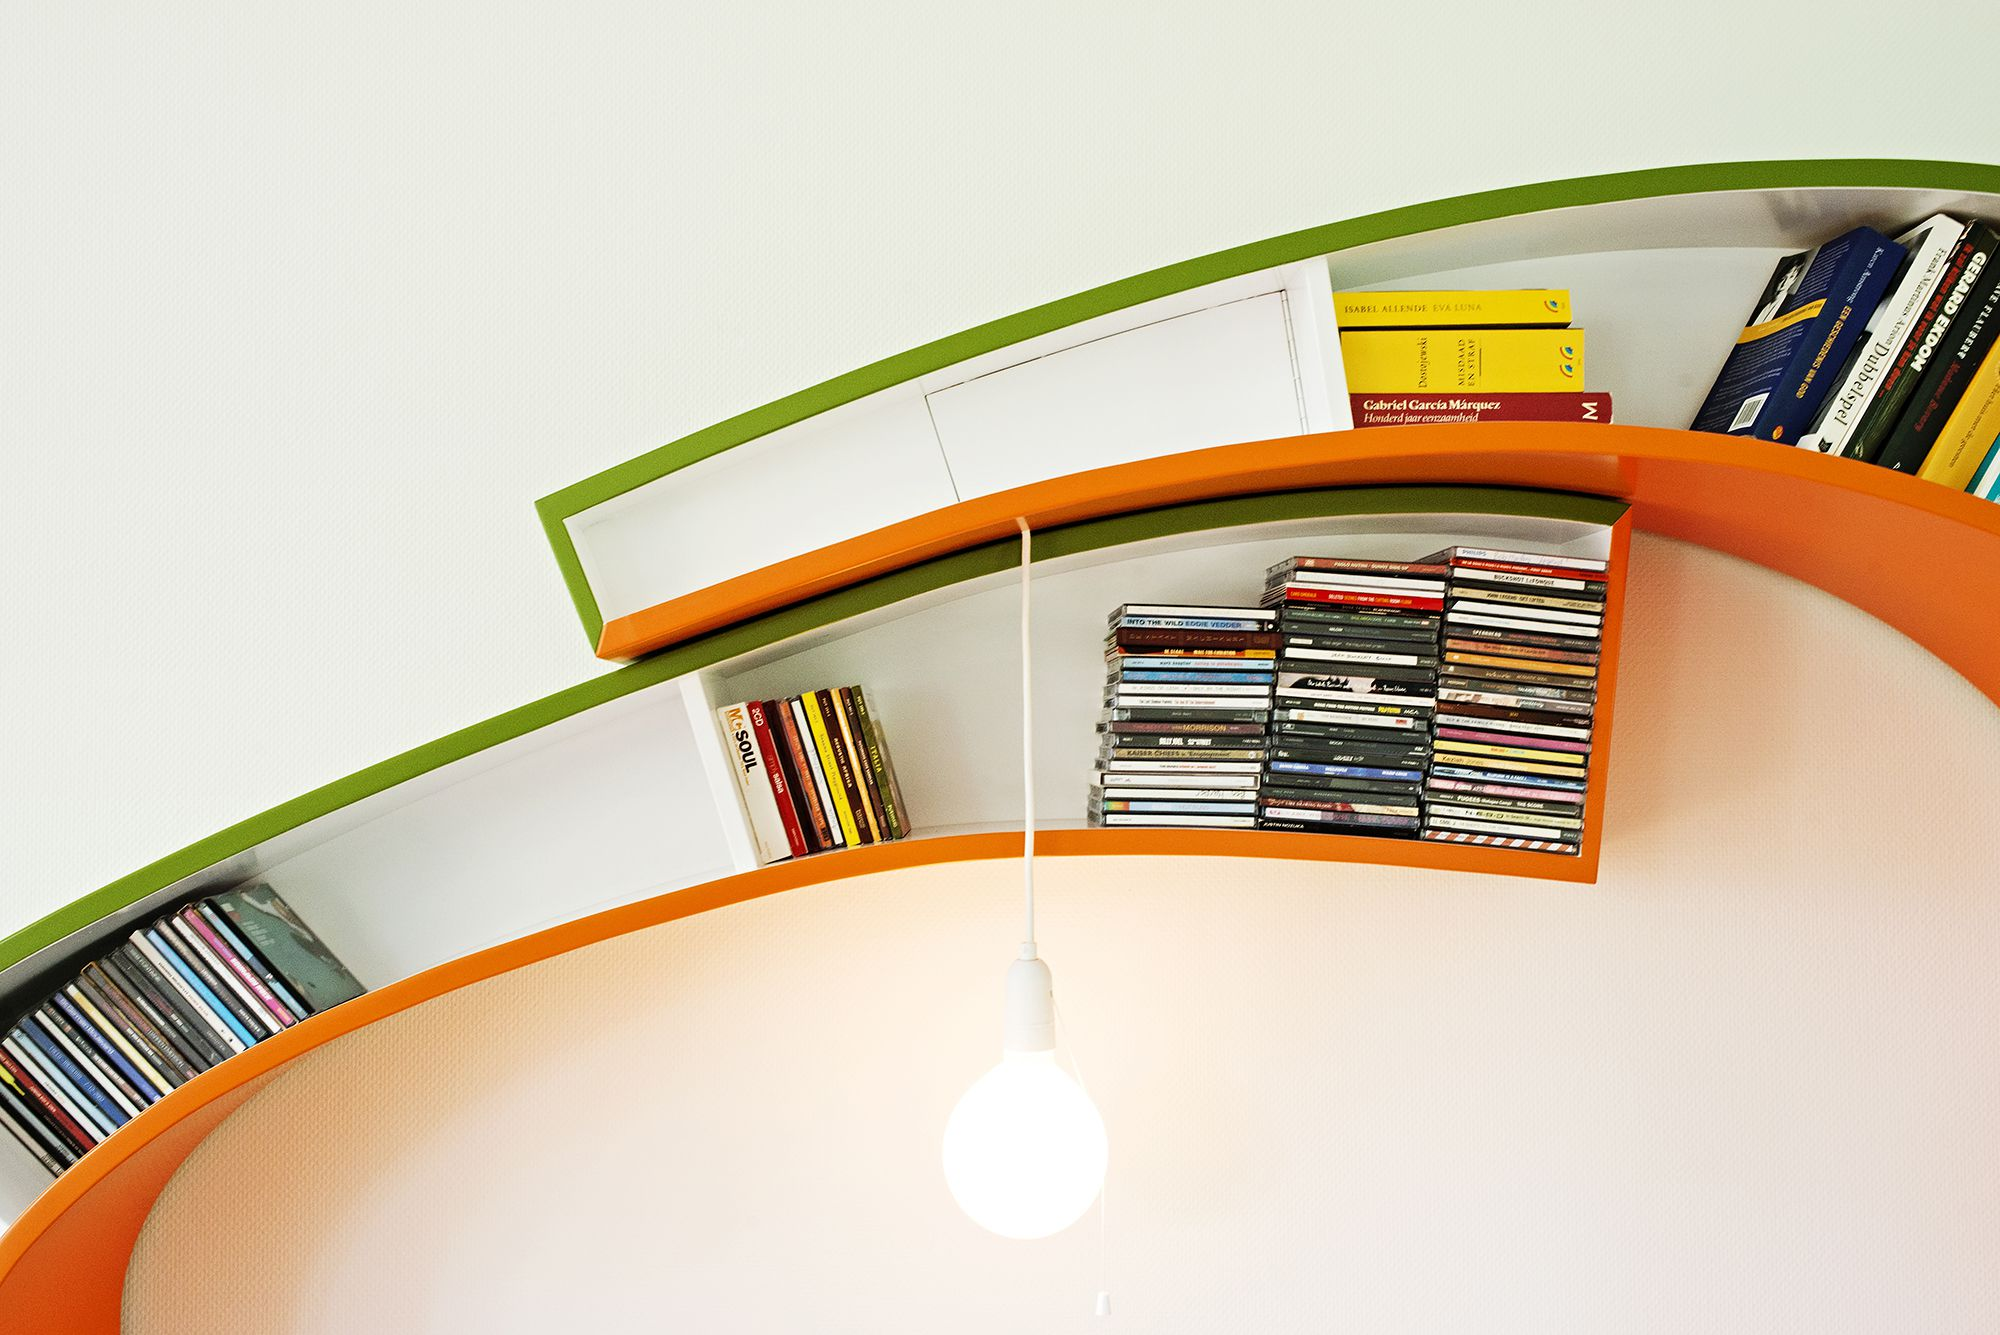 bookworm by atelier   caandesign  architecture and home  - chb